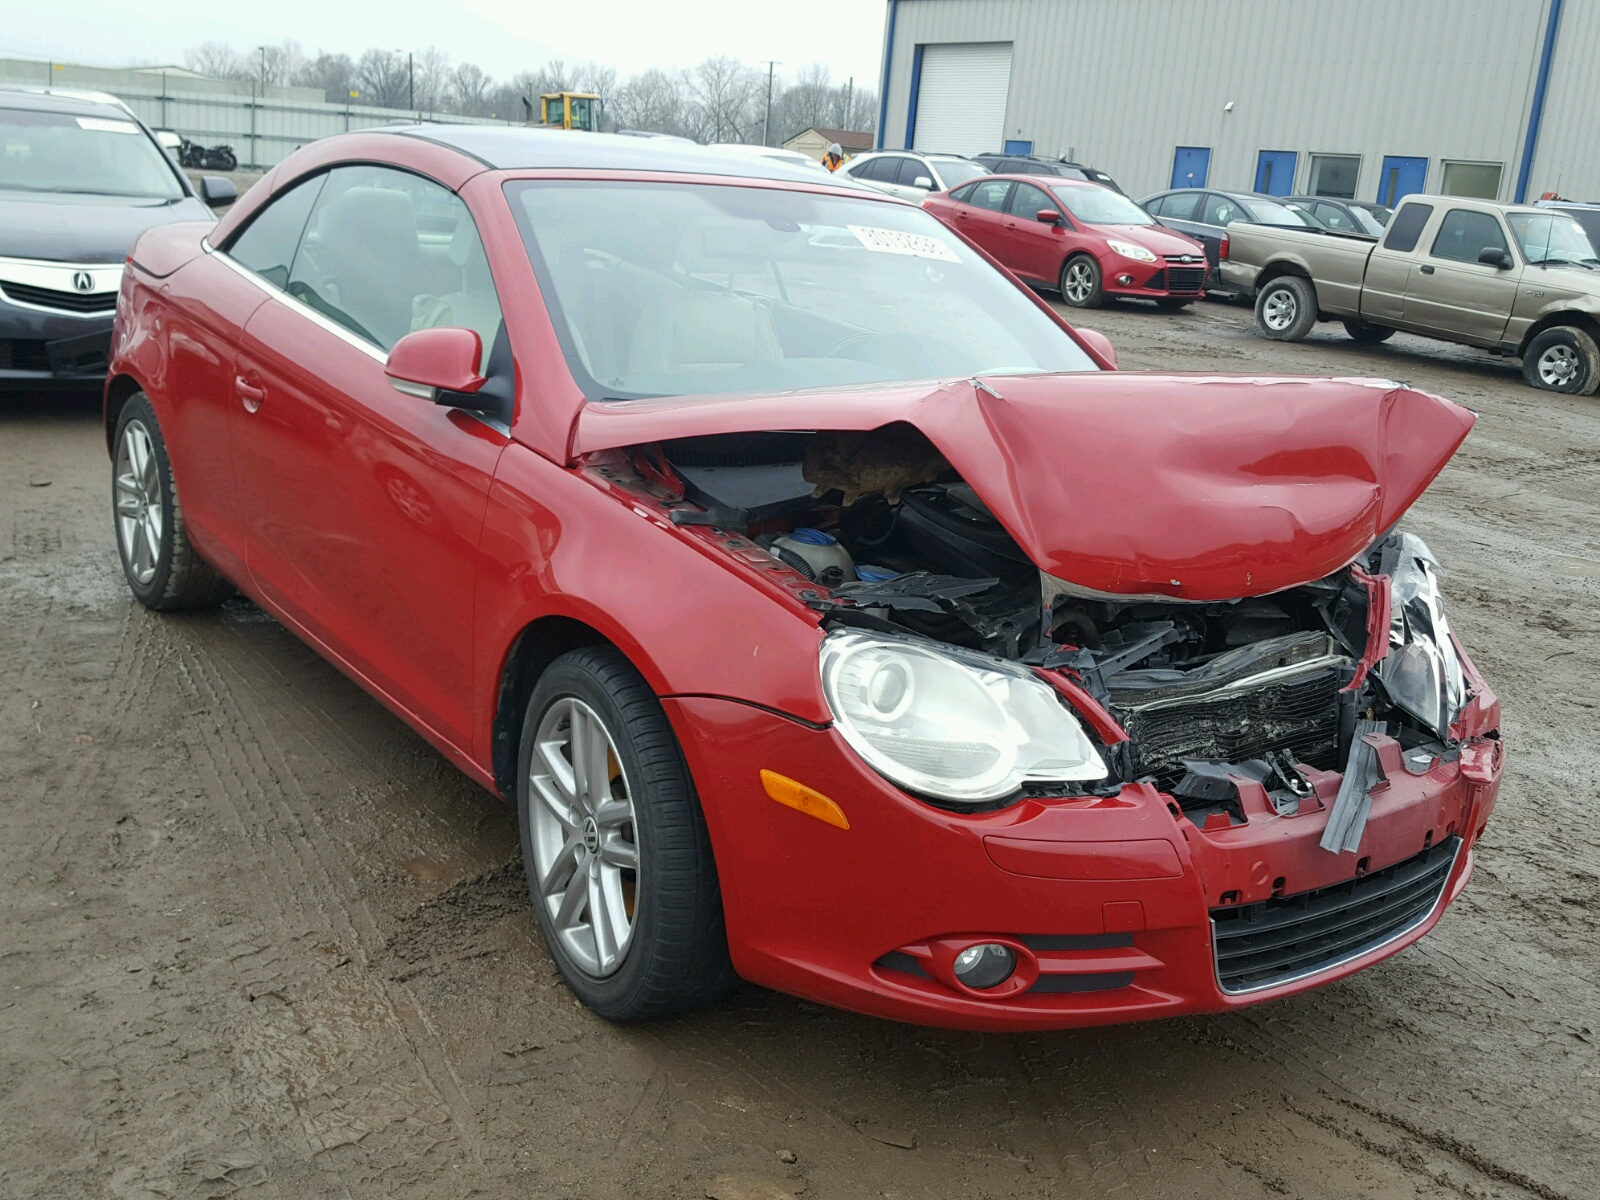 sale for s copart at louisville gti volkswagen lot ky cars